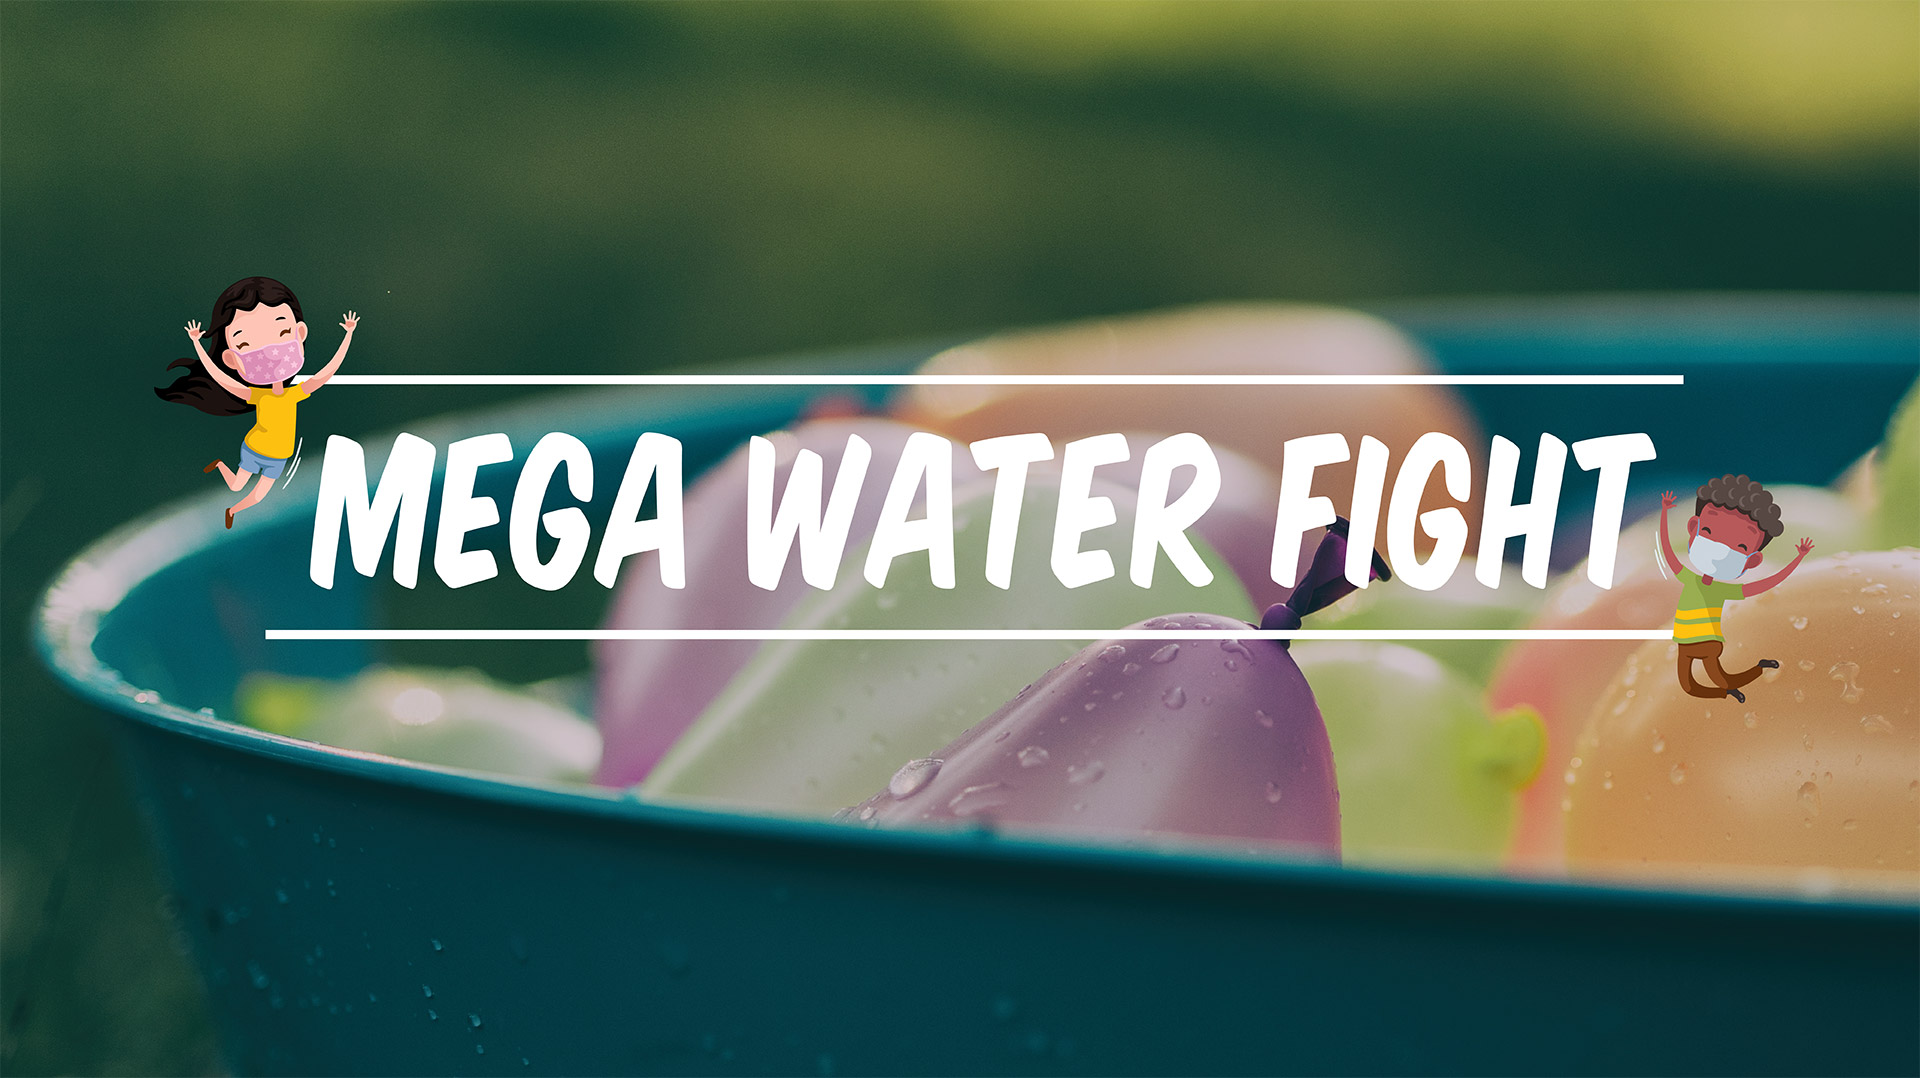 Summer Play Date - Mega Water Fight